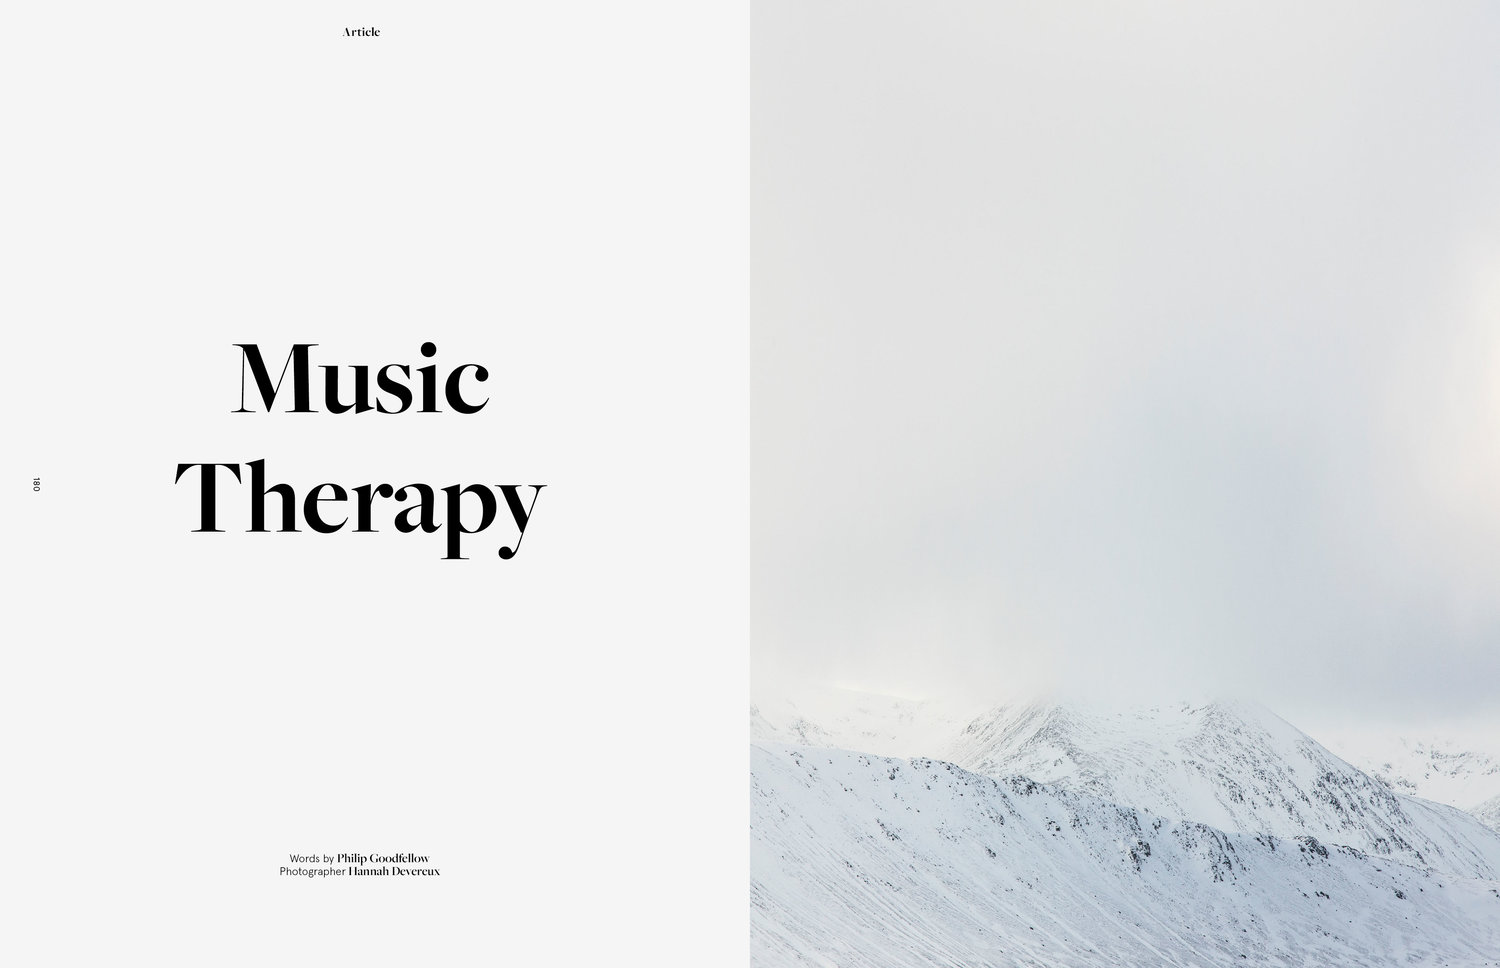 publications editorial hannah devereux photography for philip goodfellow s essay music therapy for jungle magazine